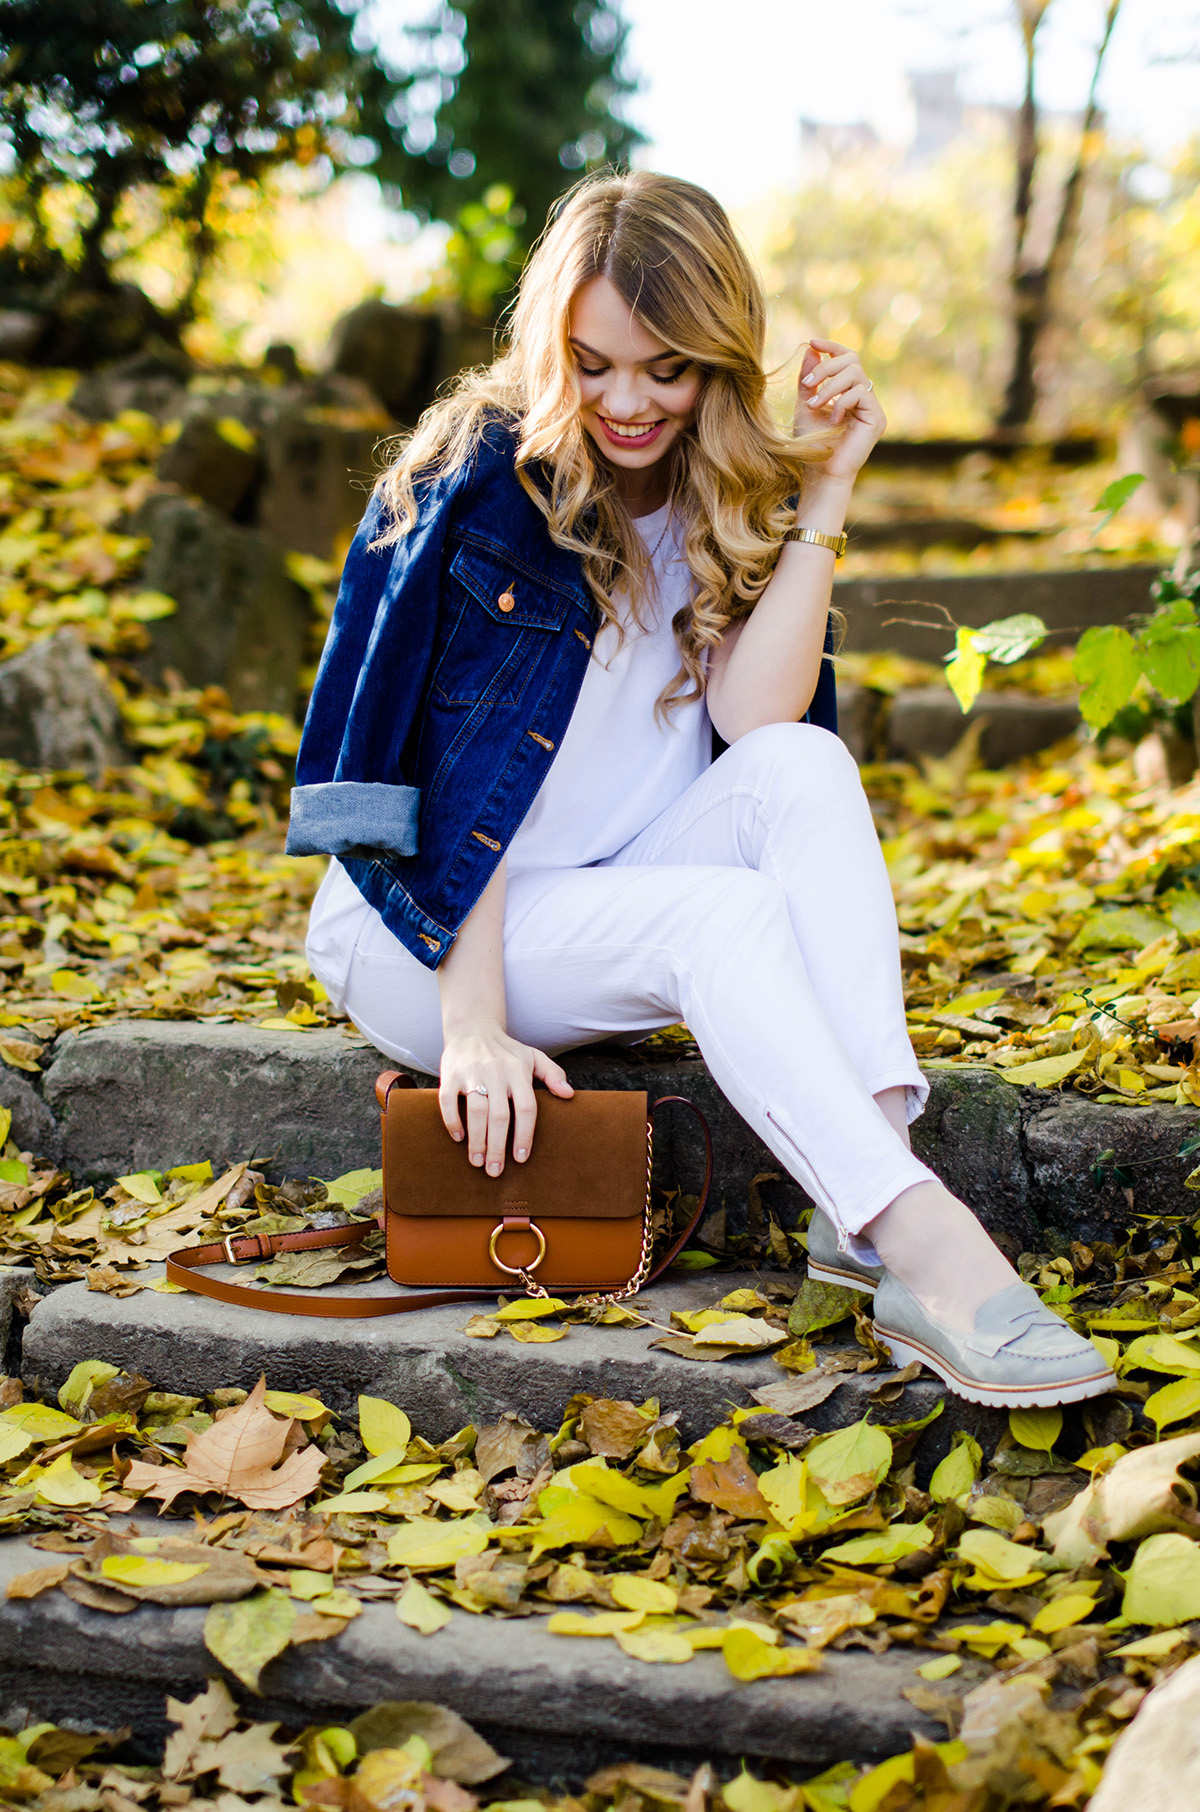 ALL-WHITE-OUTFIT-DENIM-JACKET-CHLOE-BAG-AUTUMN (7)